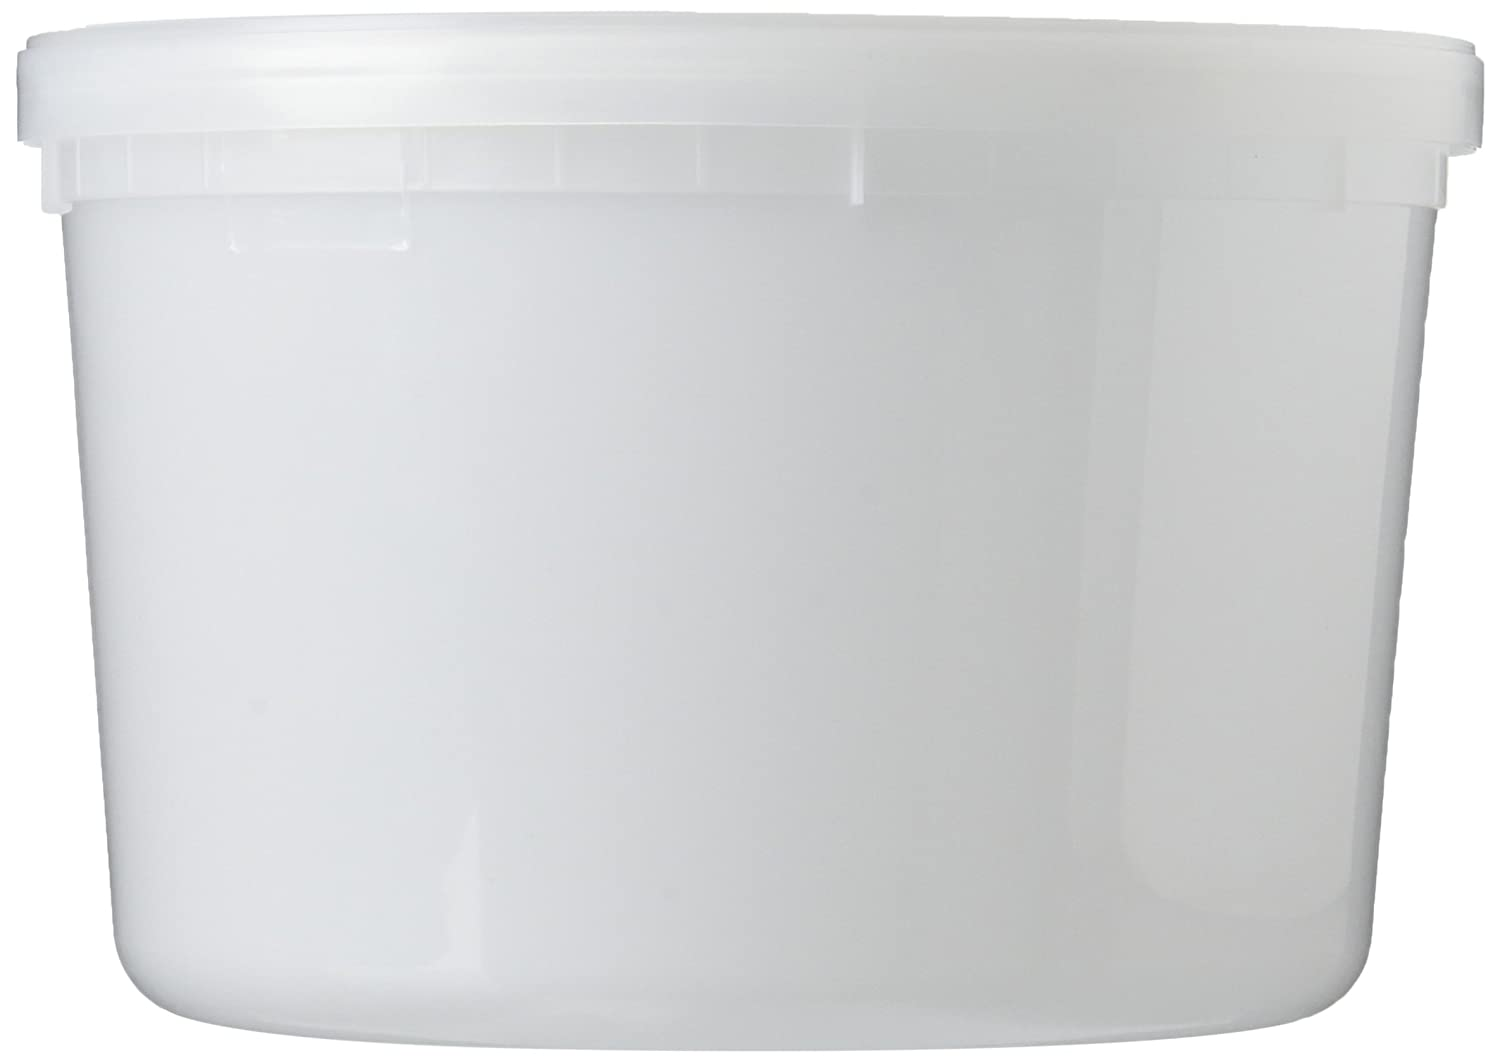 Extreme Freeze RTEF0864 Reditainer 64 oz. Freezeable Deli Food Containers w/Lids - Package of 8 - Food Storage